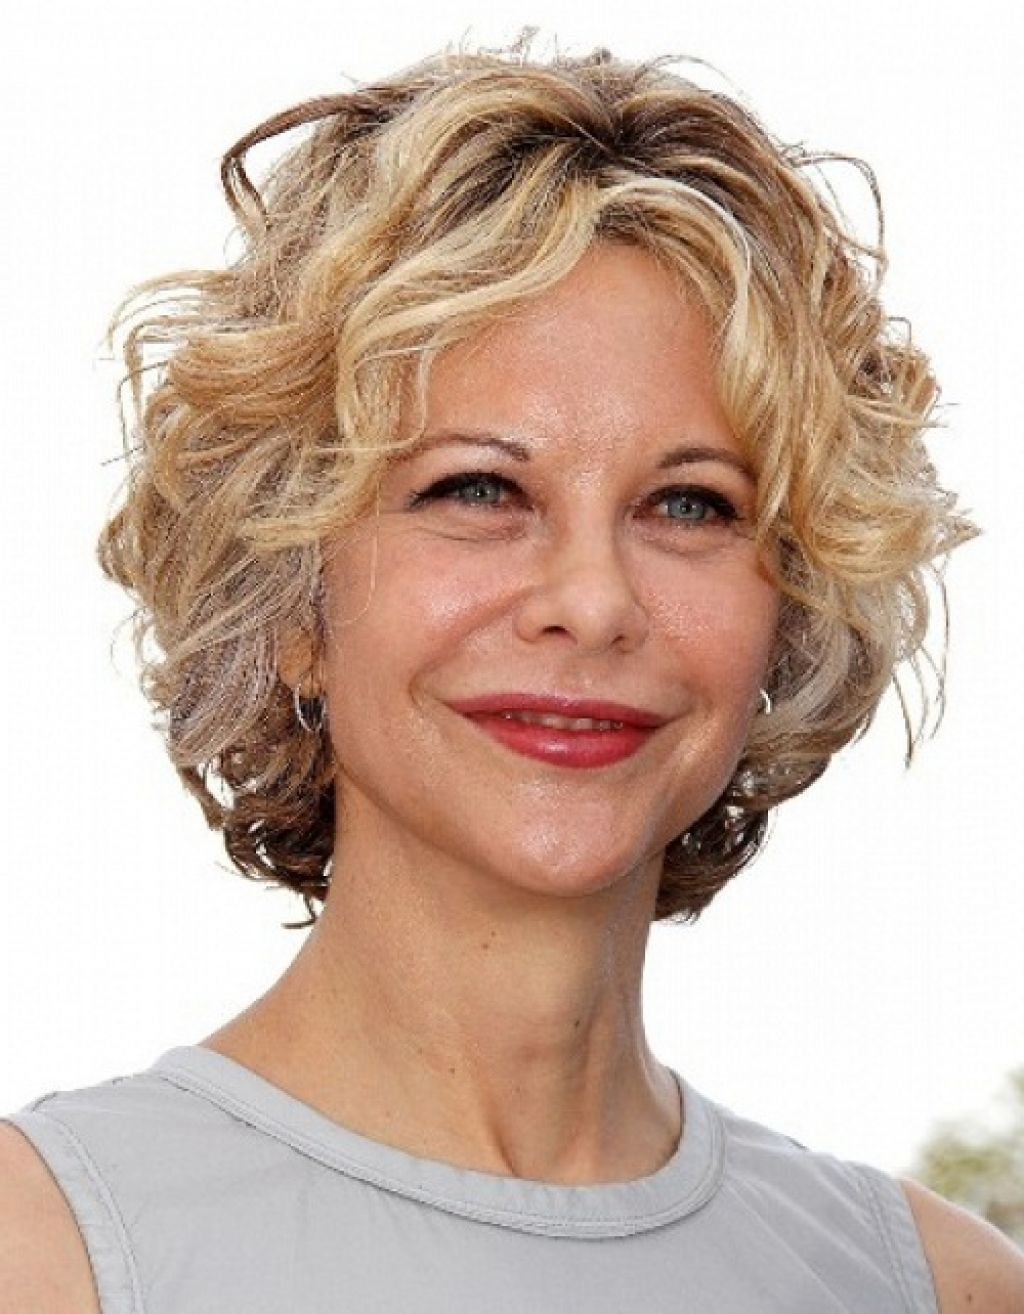 hair color for women over 40 | women short hairstyles | hair